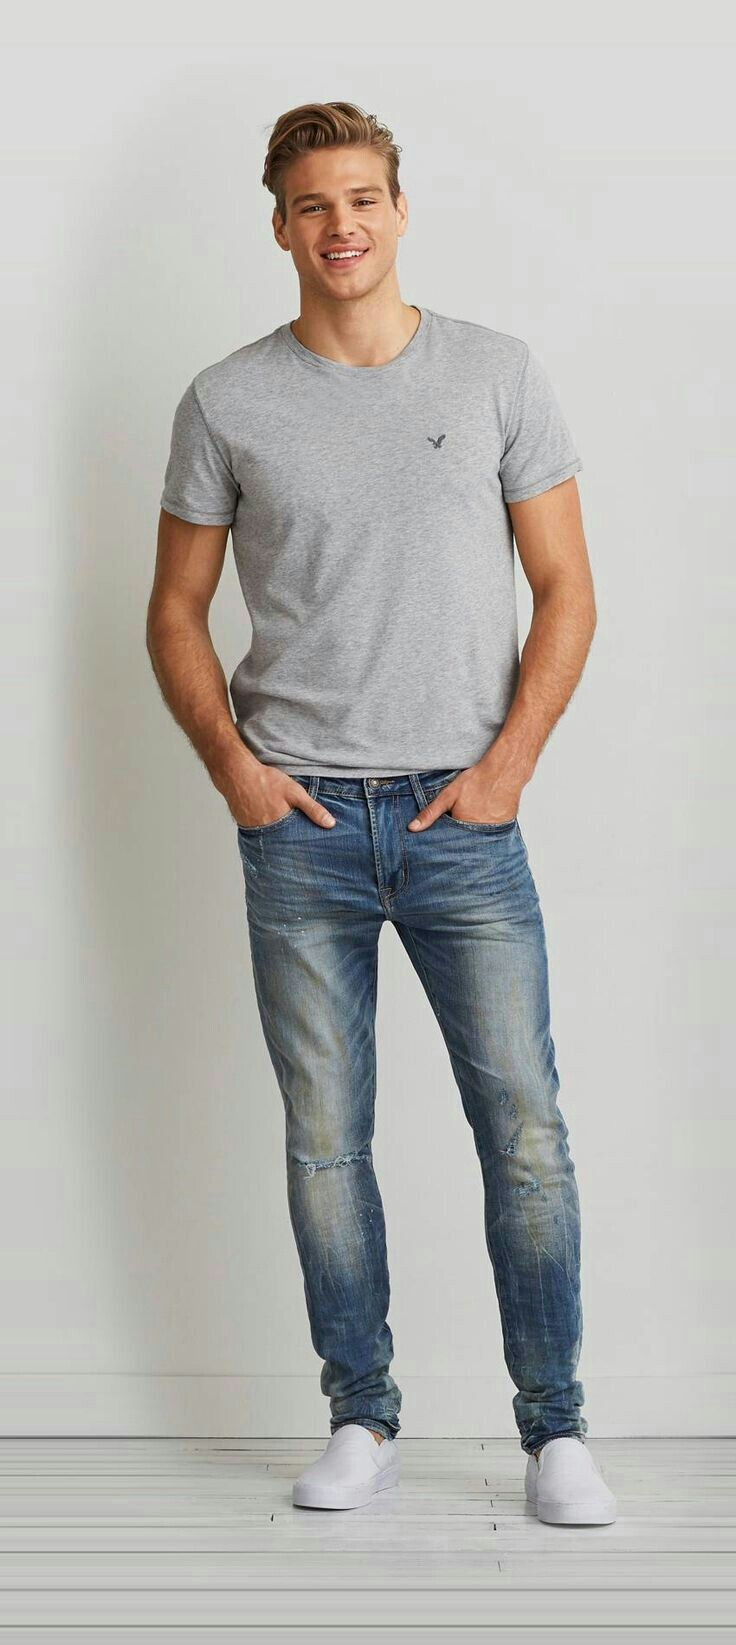 T-shirt-and-jean-trousers. 120+ Fashion Trends and Looks for College Students in 2020/2021